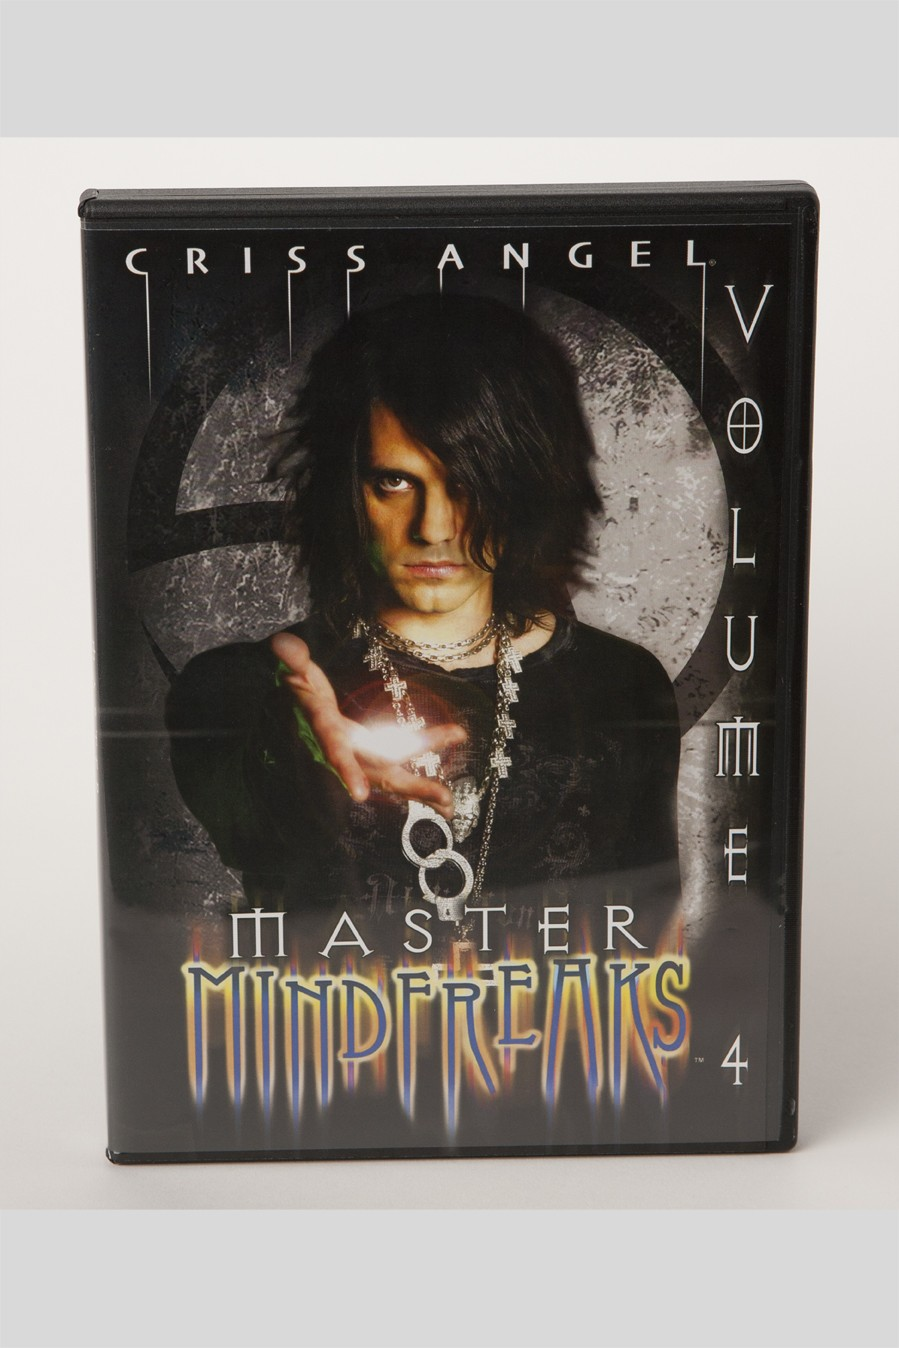 DVD CRISS ANGEL MASTER MINDFREAKS VOL 4